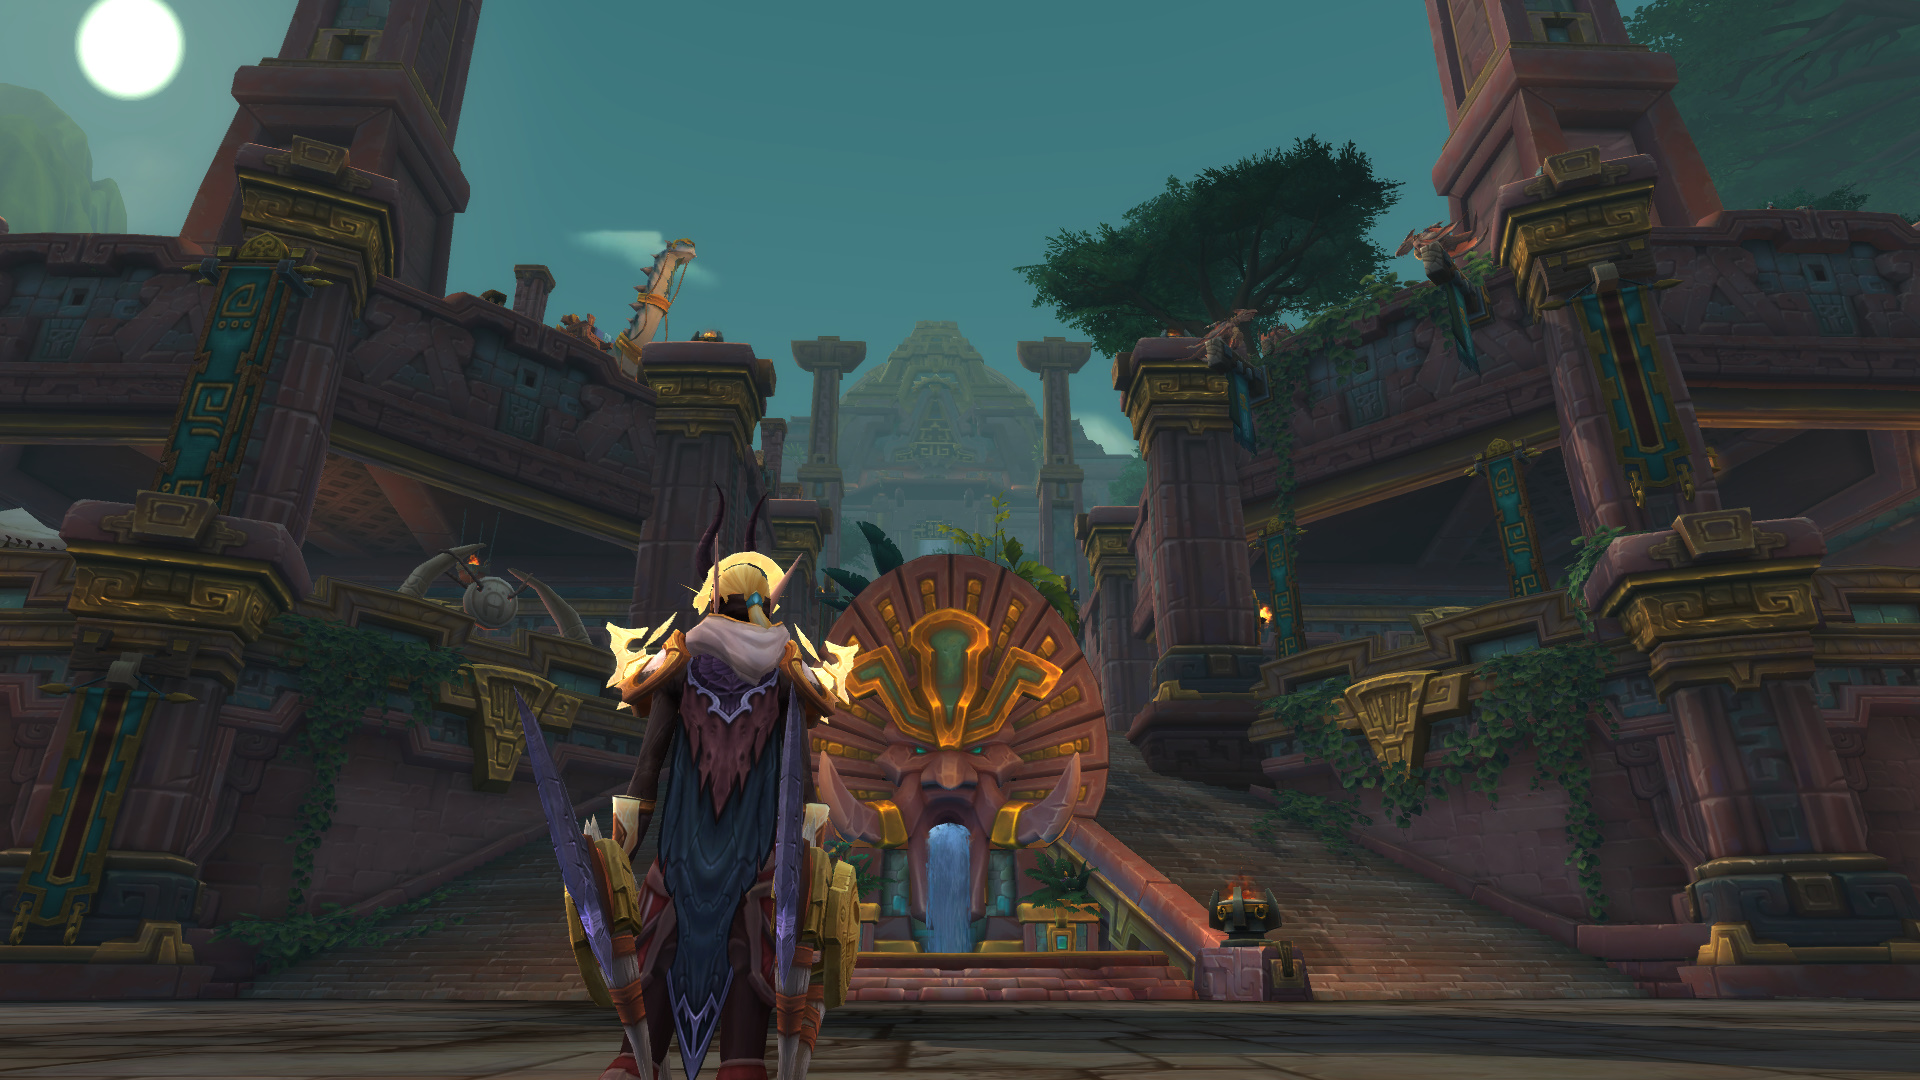 Fight for Azeroth review-in-progress: Bring the world back